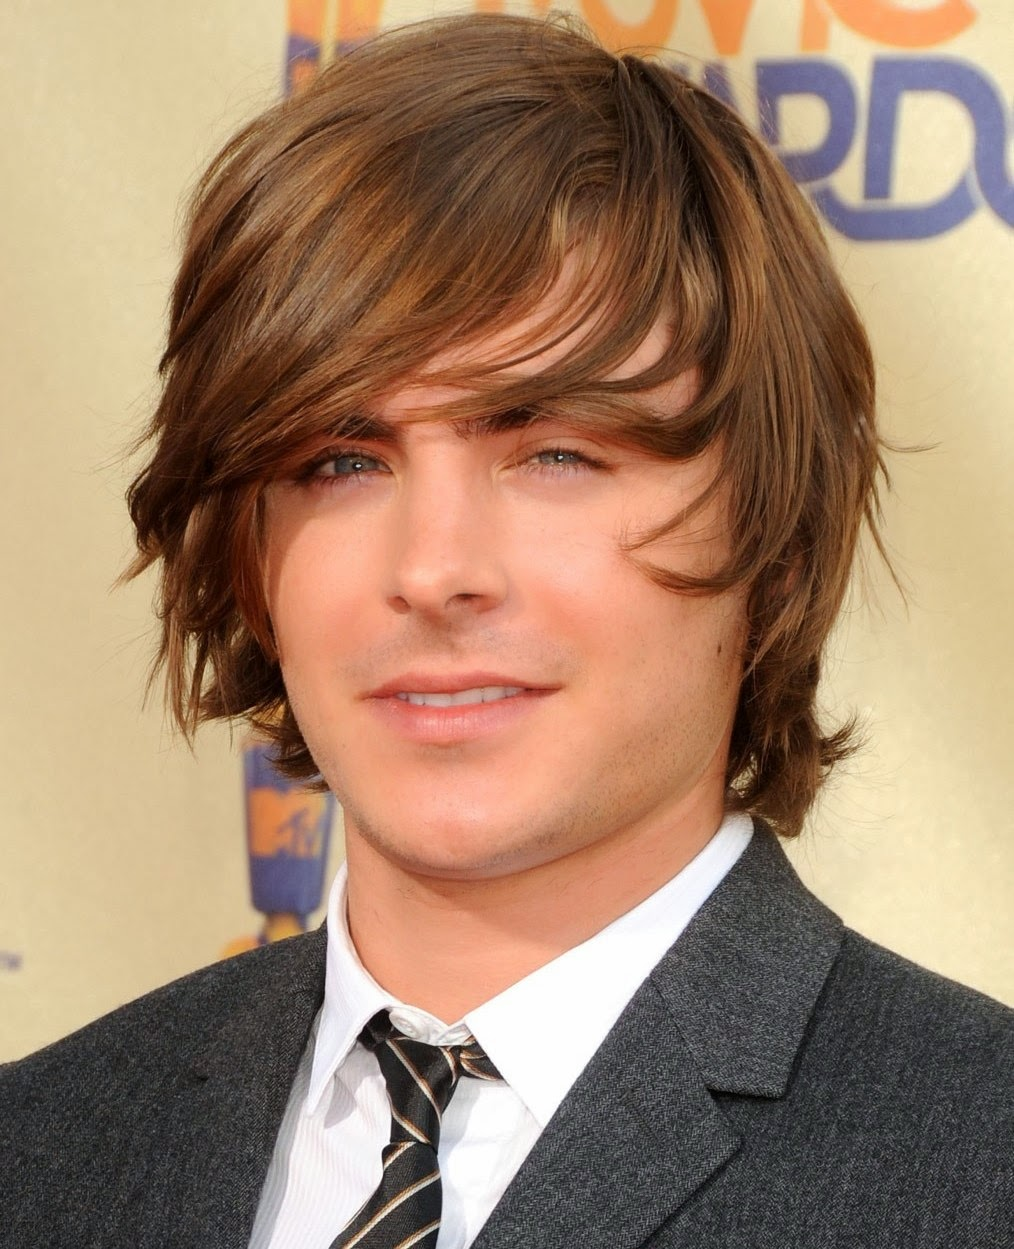 27 Beautiful Long Hairstyle Name For Man Images Hair Style